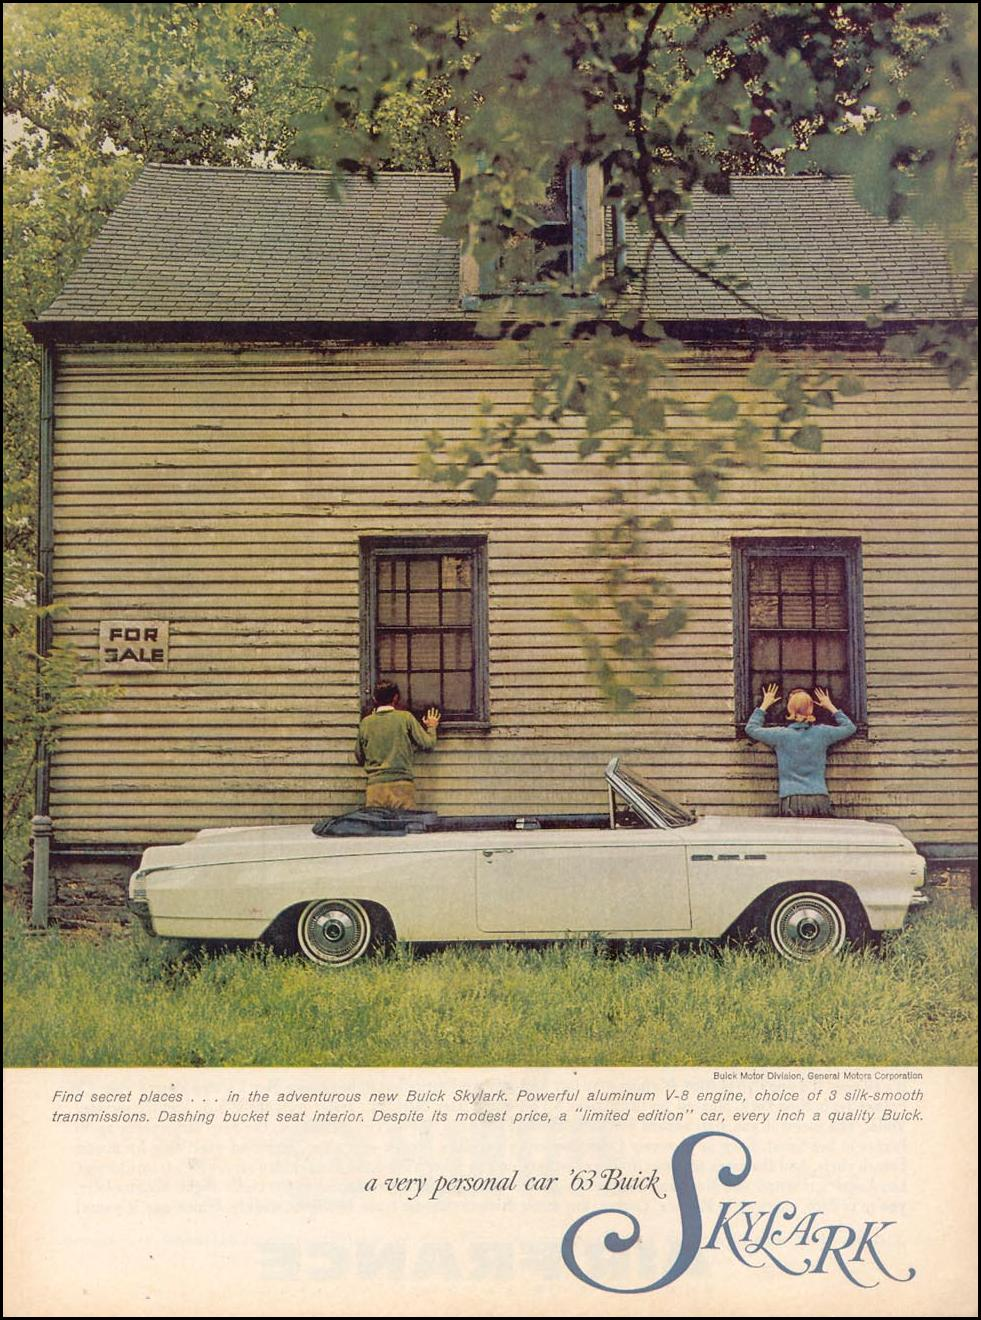 BUICK AUTOMOBILES TIME 05/03/1963 p. 7